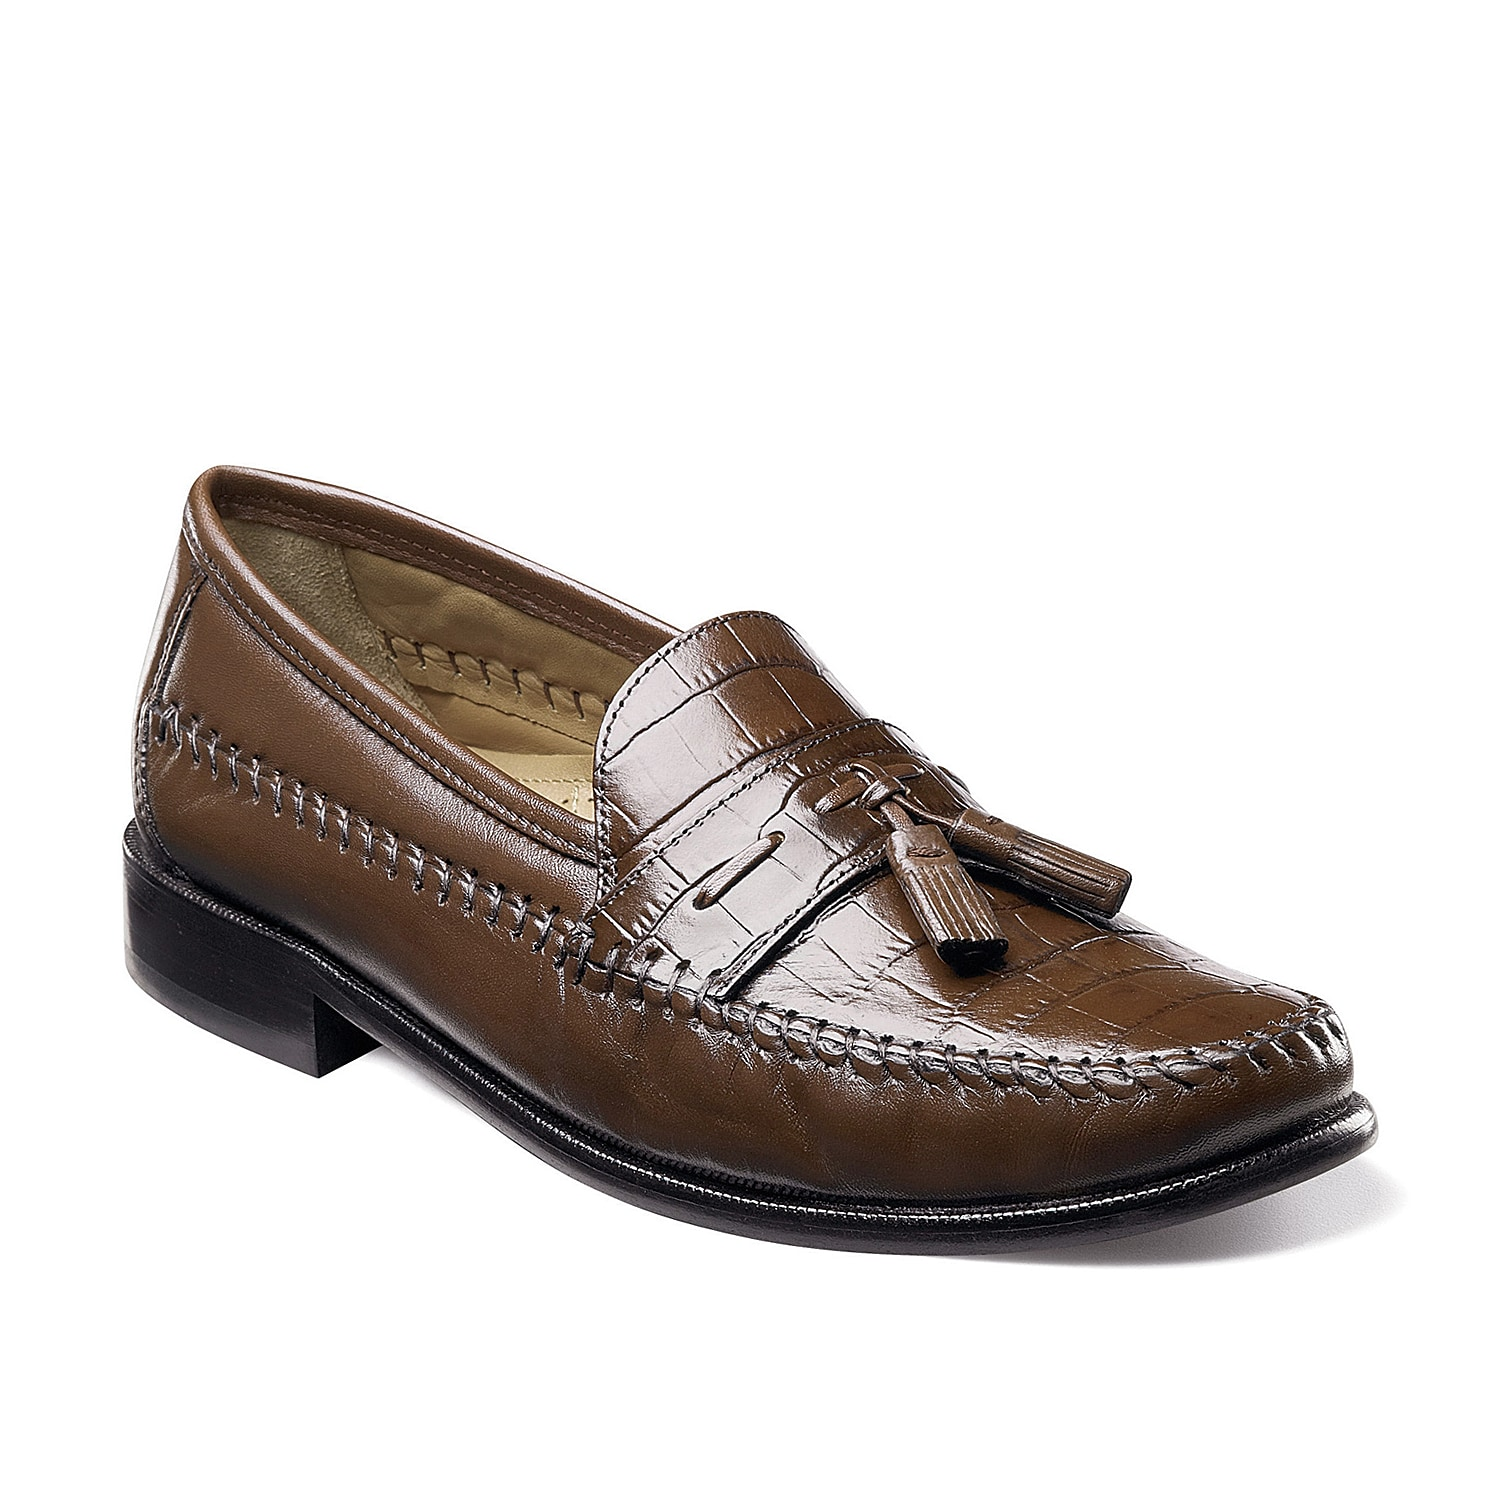 The Pisa loafer from Florsheim features a smooth embossed upper with classic moccasin construction to keep your dress looks on point.